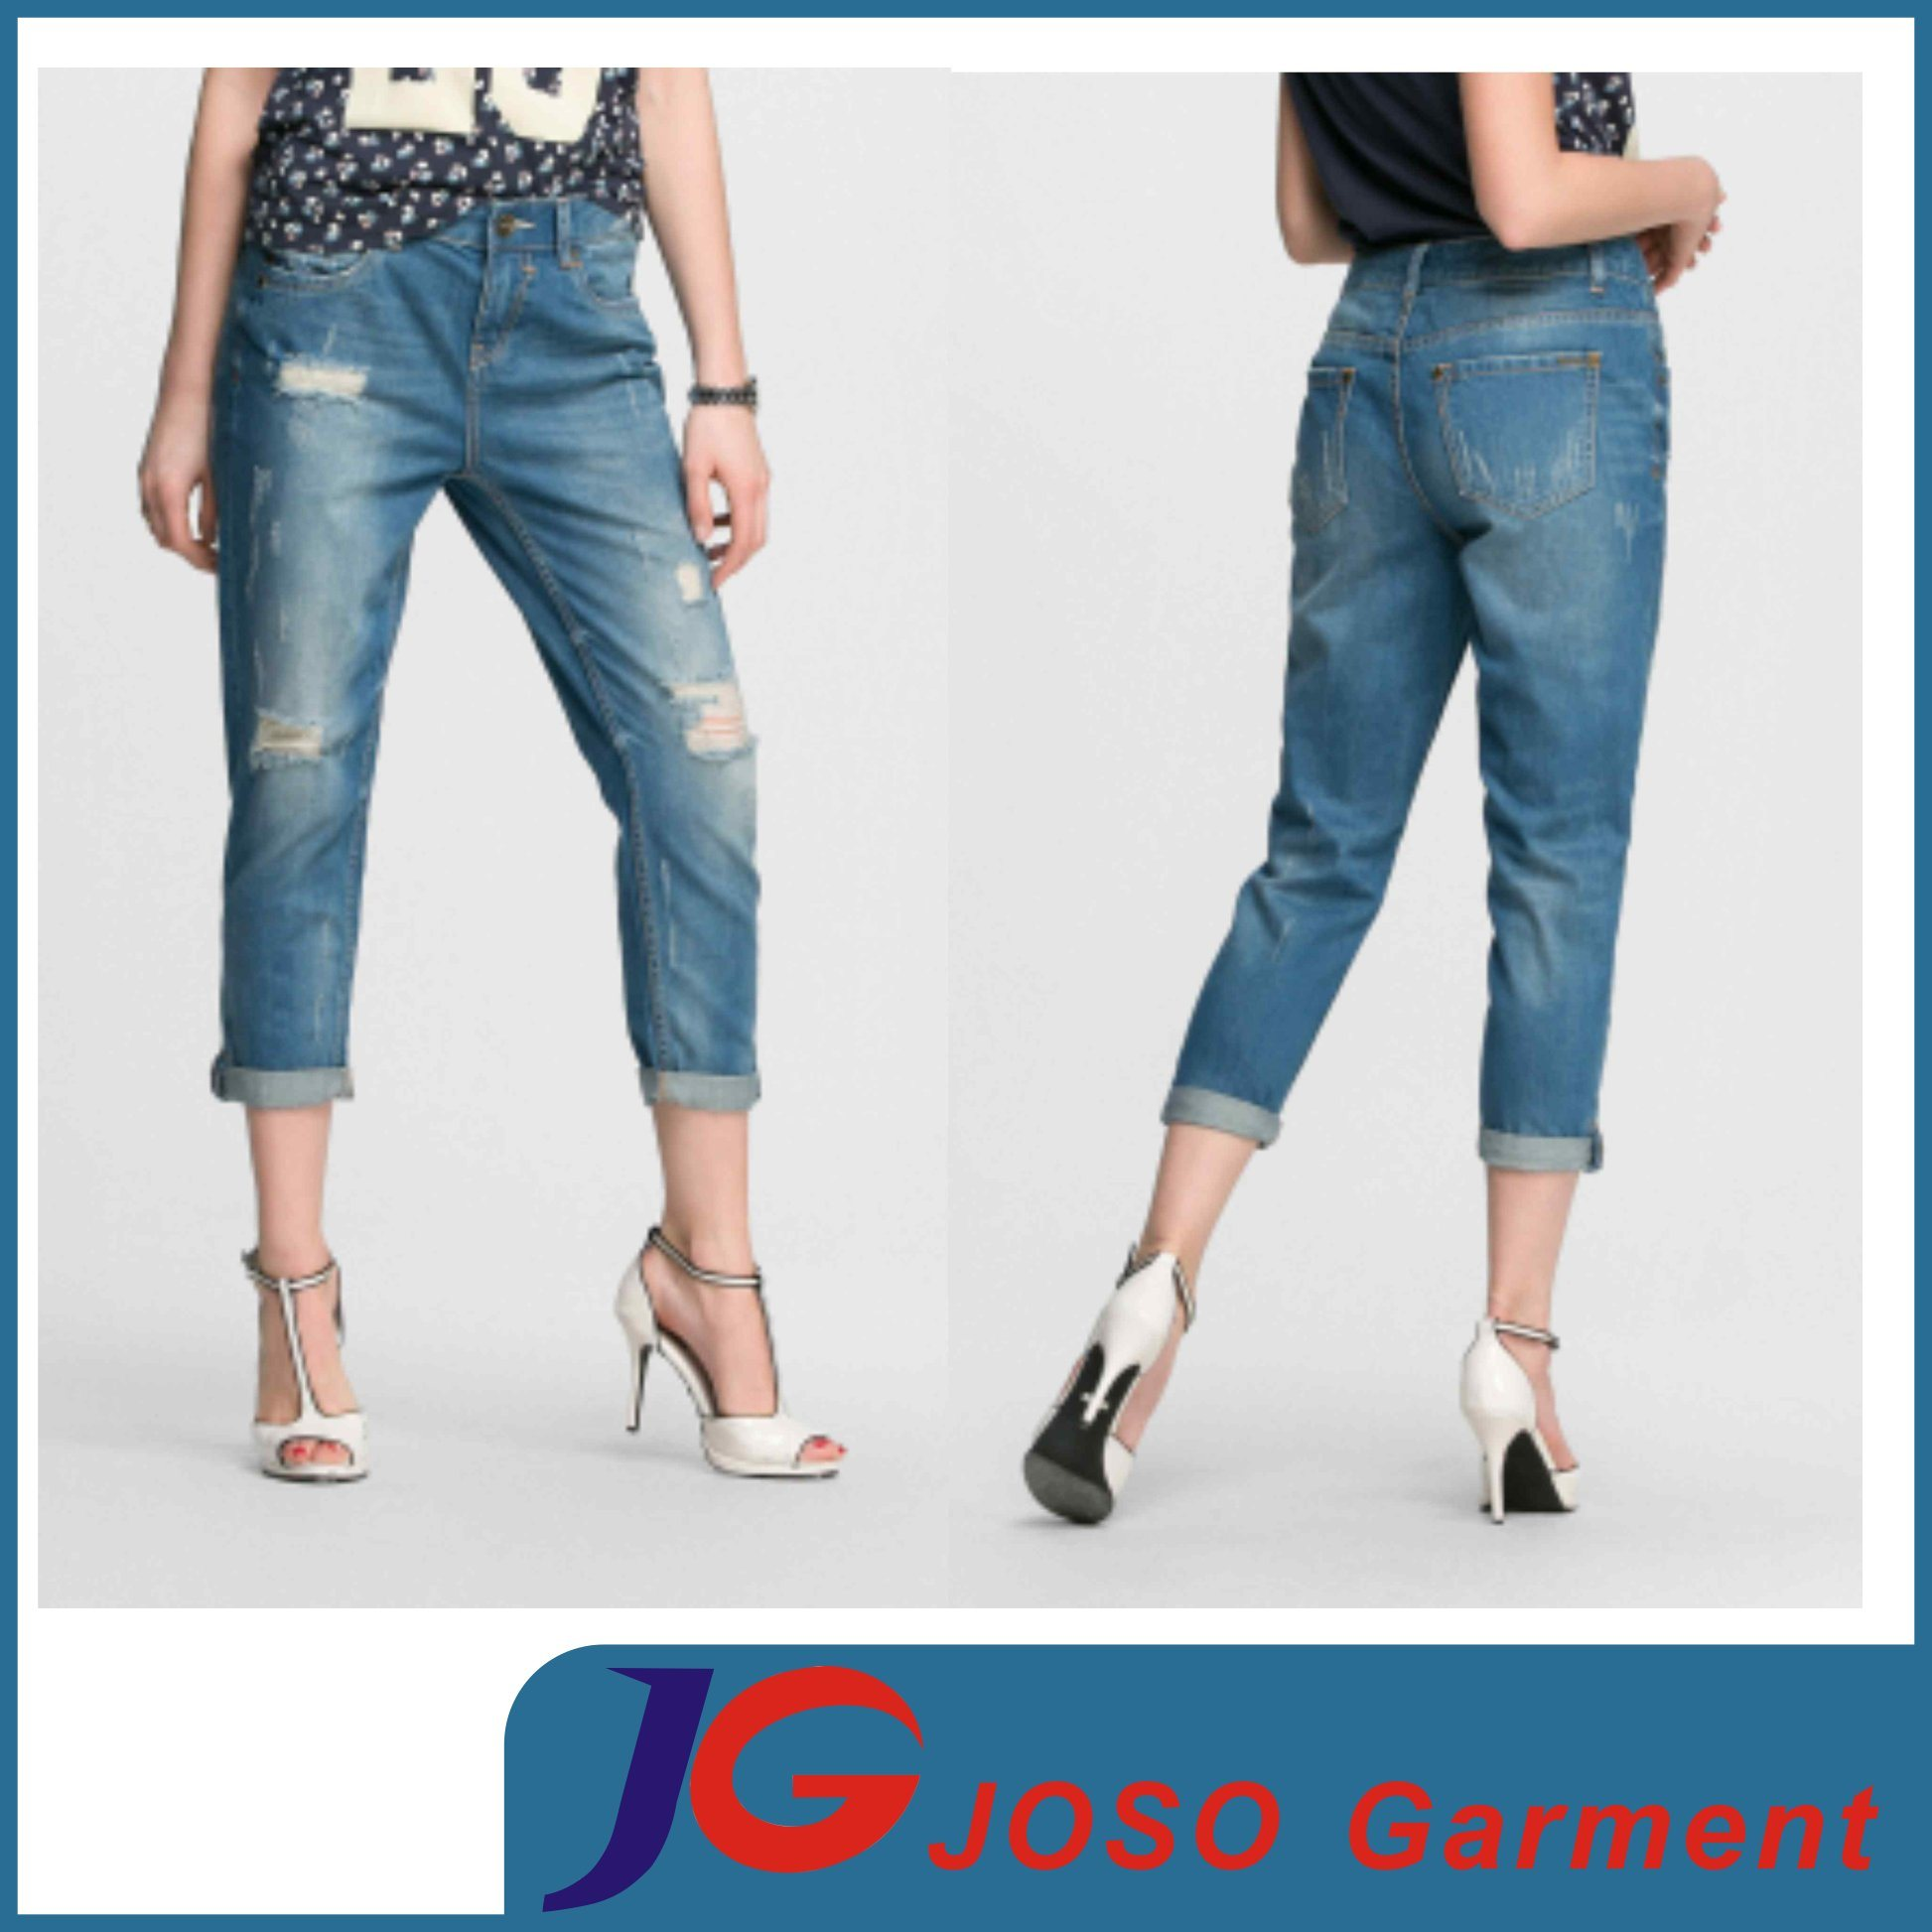 f2efcddf China Women Jeans Trousers Lady Jeans Online Shop Cufled Jean (JC1361) -  China Women Trousers, Lady Jeans